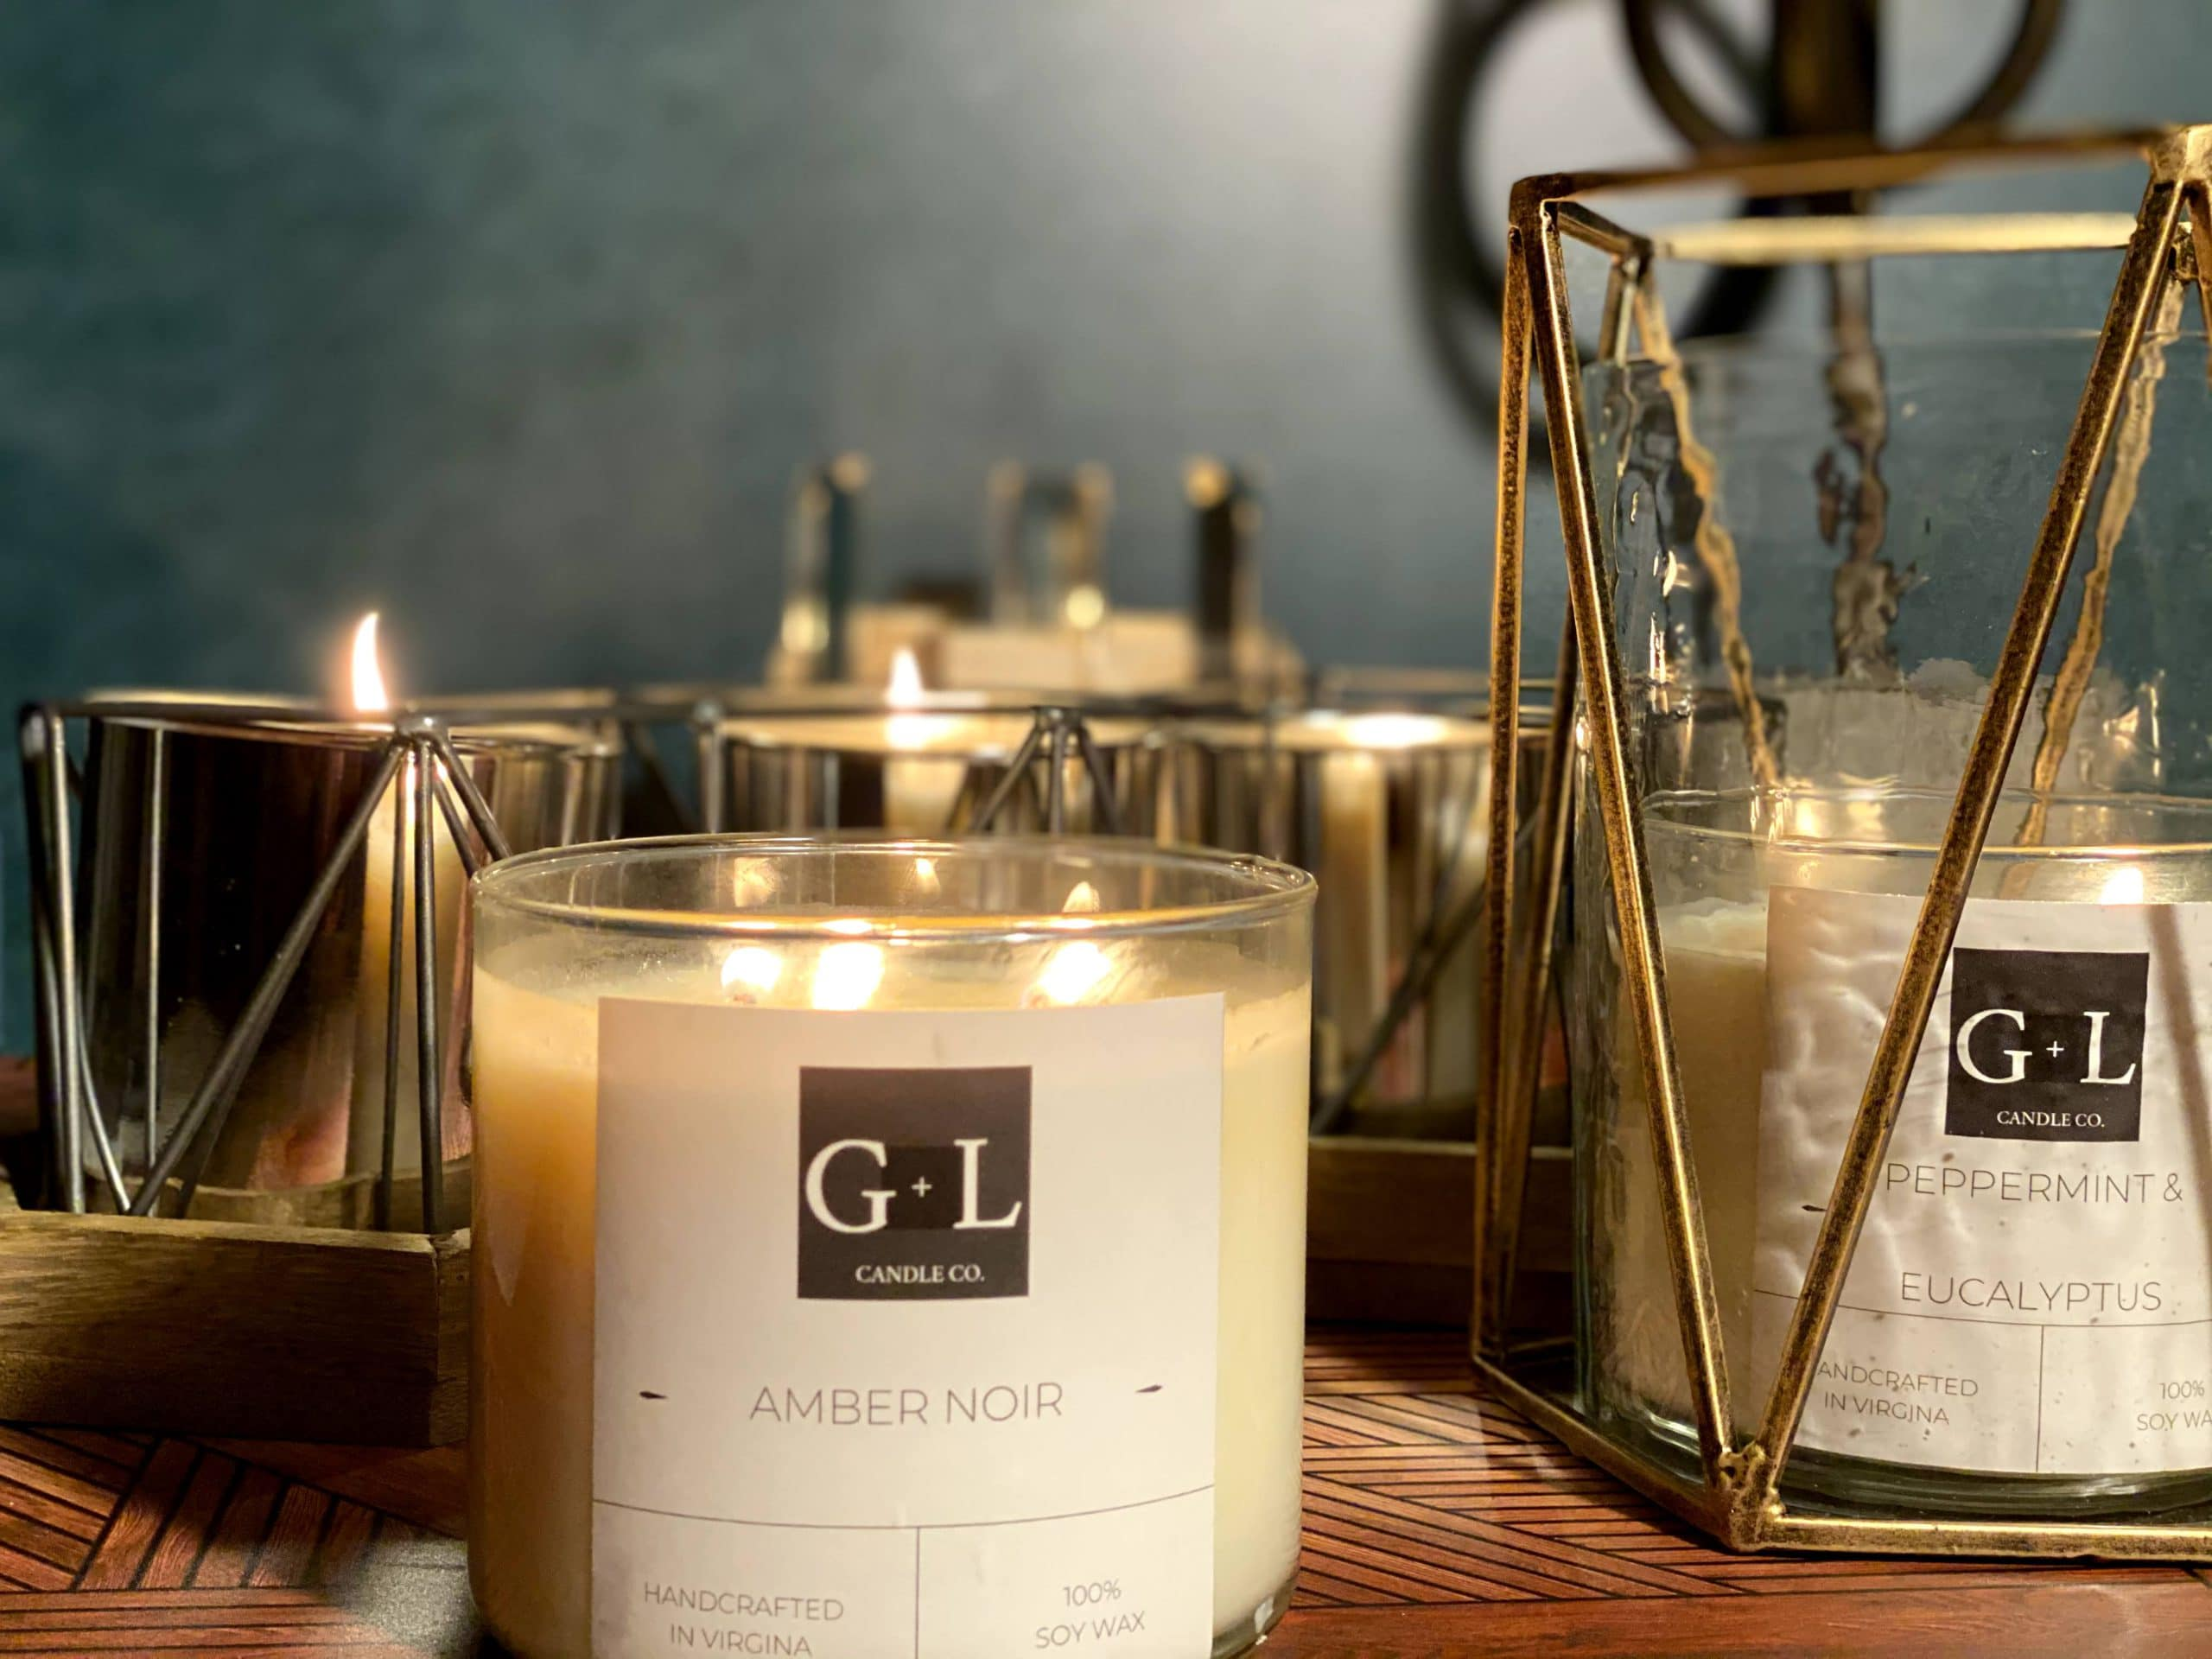 Grace+Love Candle Co